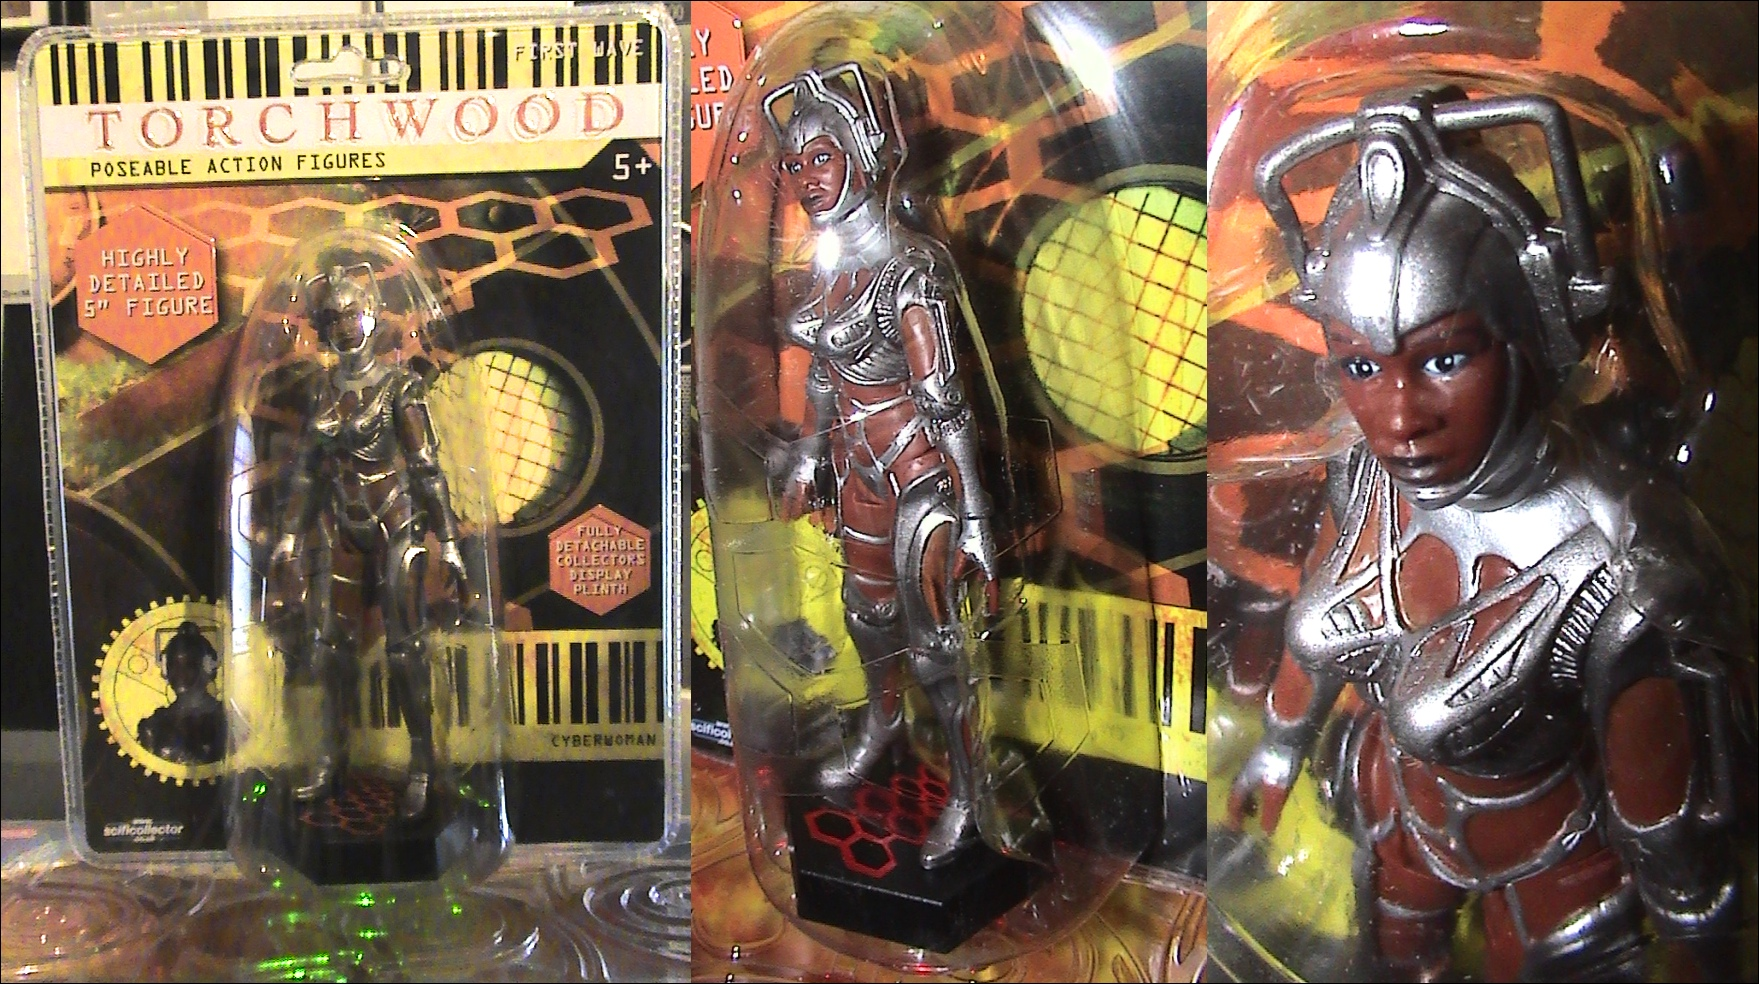 TorchWood Cyberwoman 1st Wave 5 Action Figure New